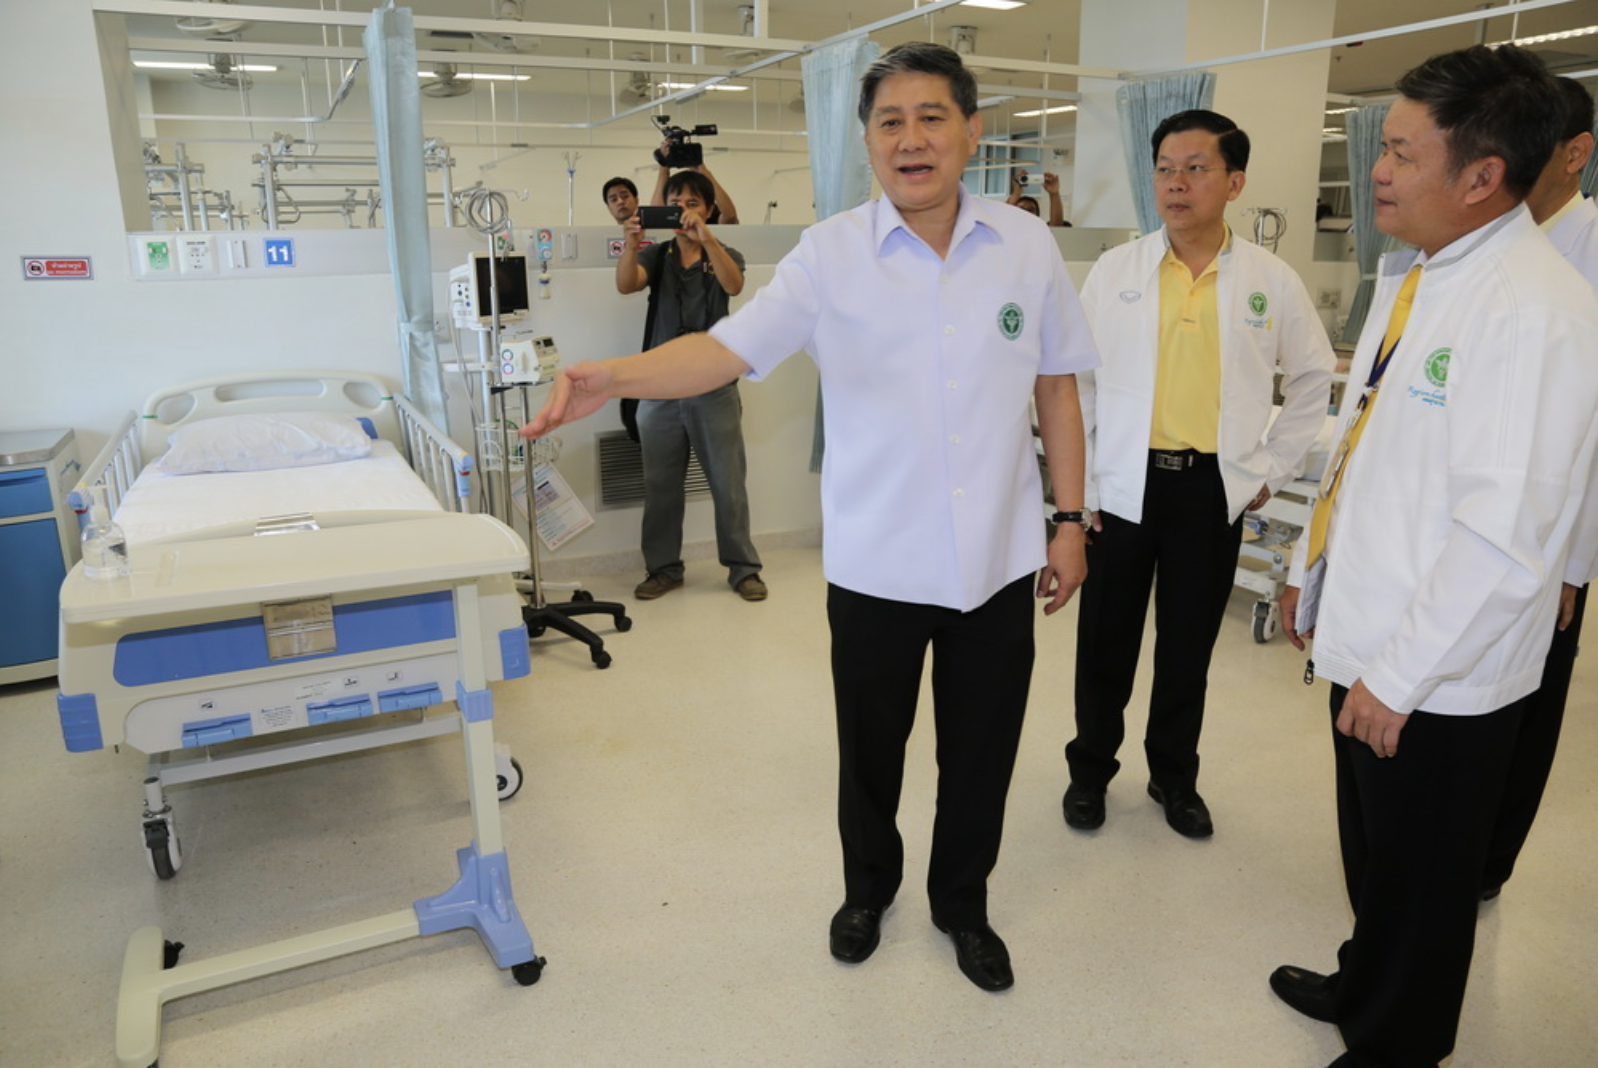 Dr. Jatyad Chokmangmuk, Secretary of Thailand's Ministry of Public Health, shows off the treatment system at Chiangrai Prachanukroh Hospital.